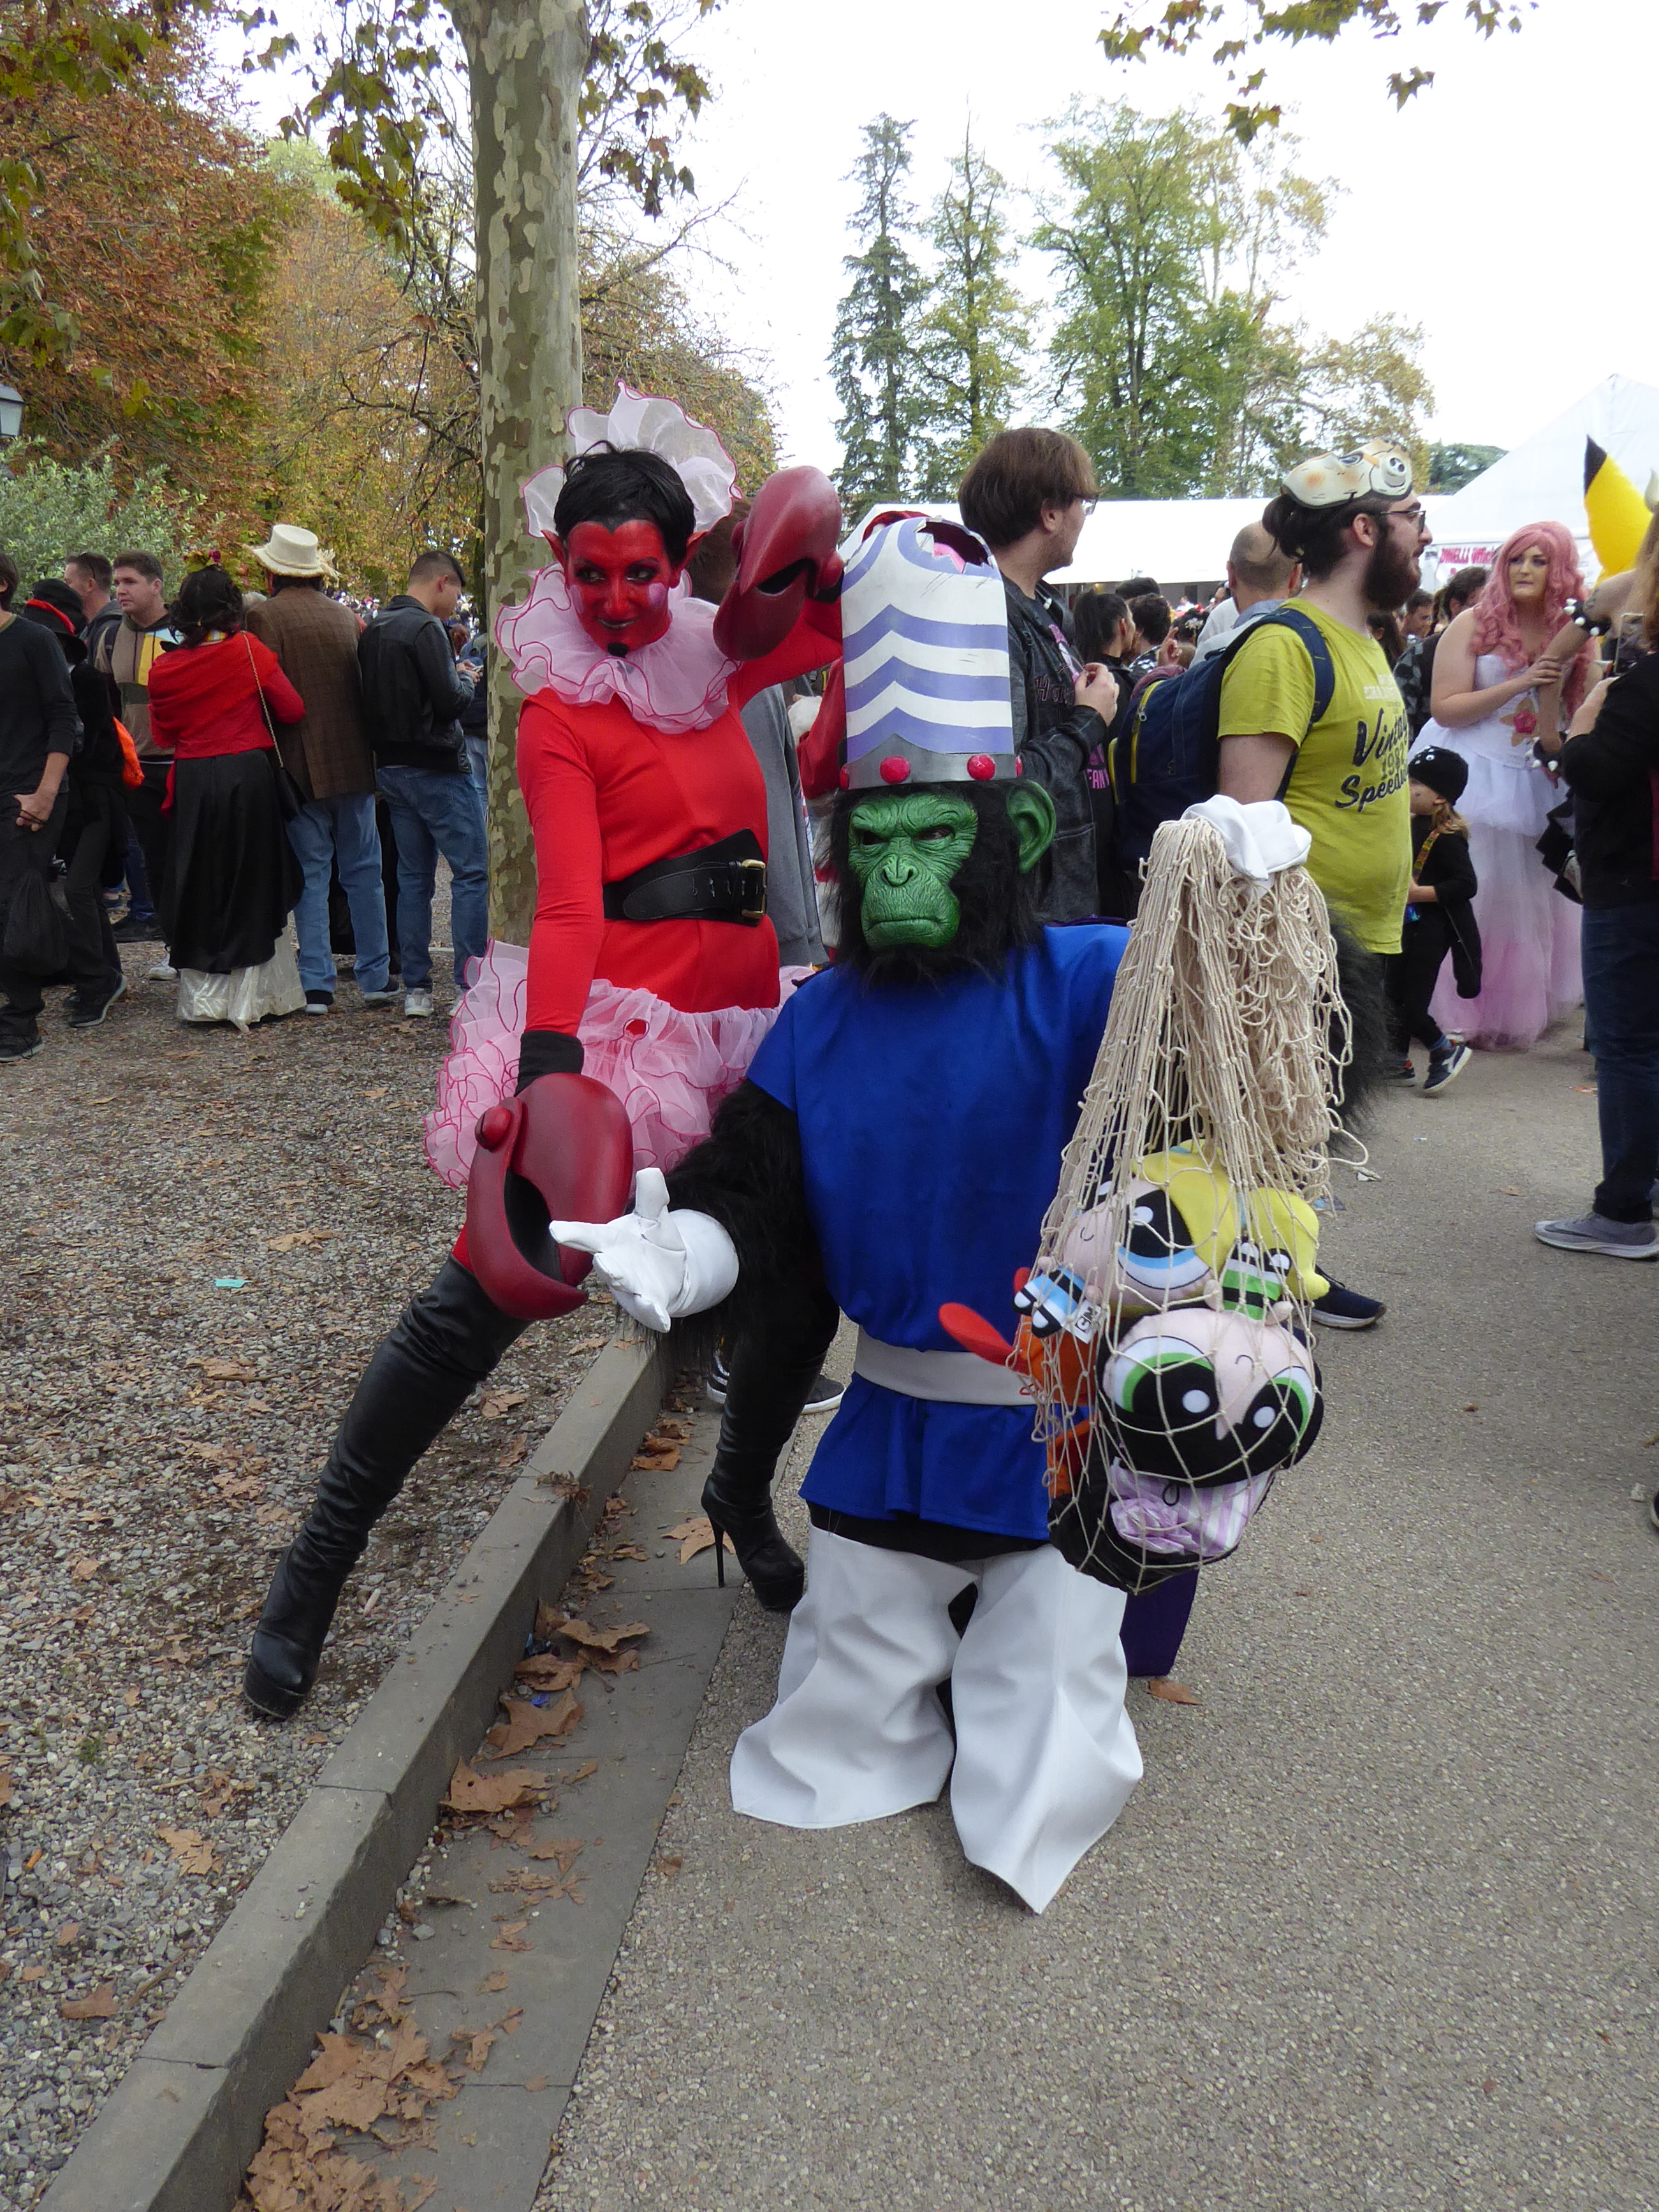 Superchicche English: Lucca Comics & Games 2019 - Cosplay of Mojo Jojo and Him from The Powerpuff Girls Date 1 November 2019, 16:03:09 Source Own work Author